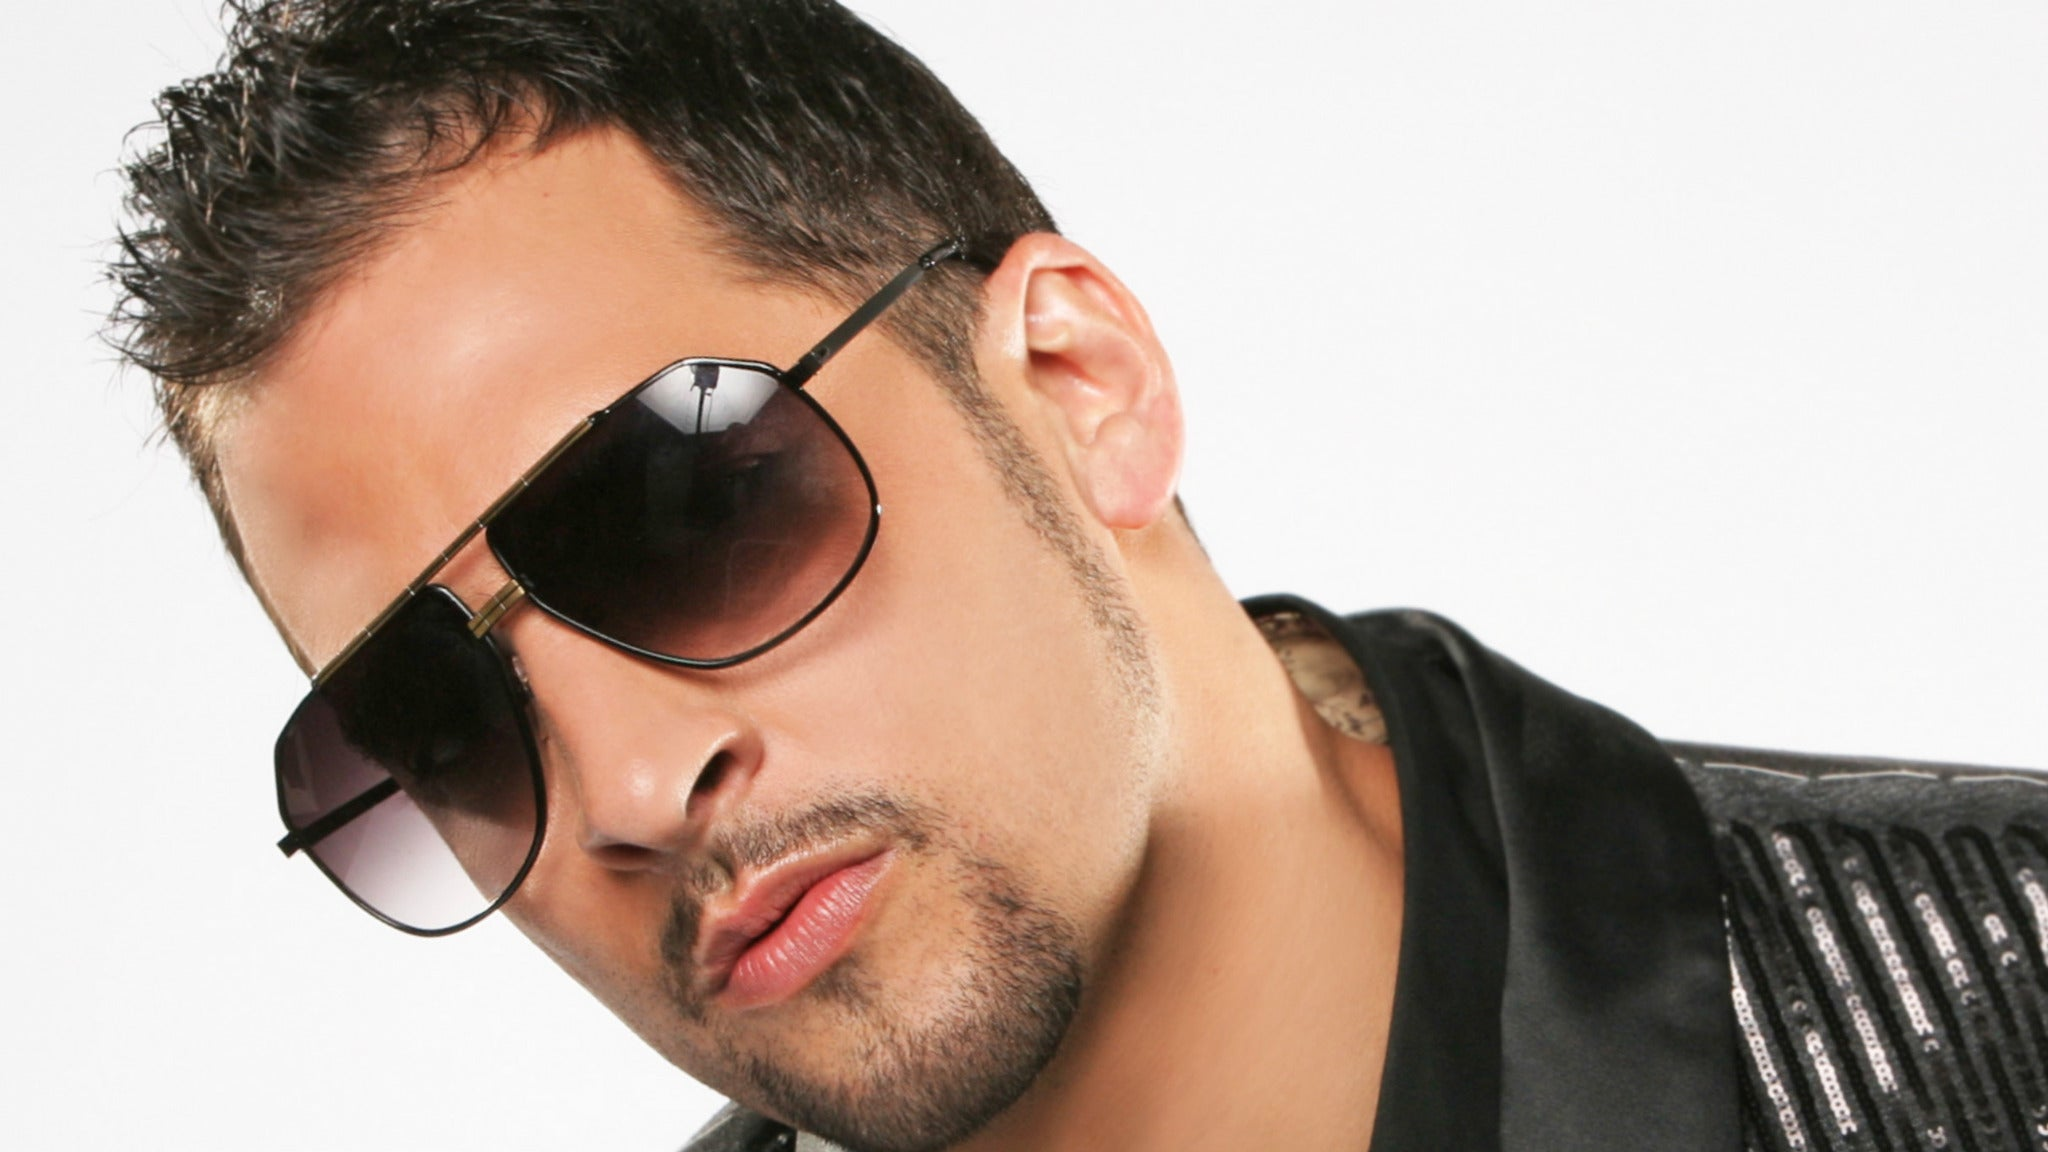 Jon B. at Five Flags Center